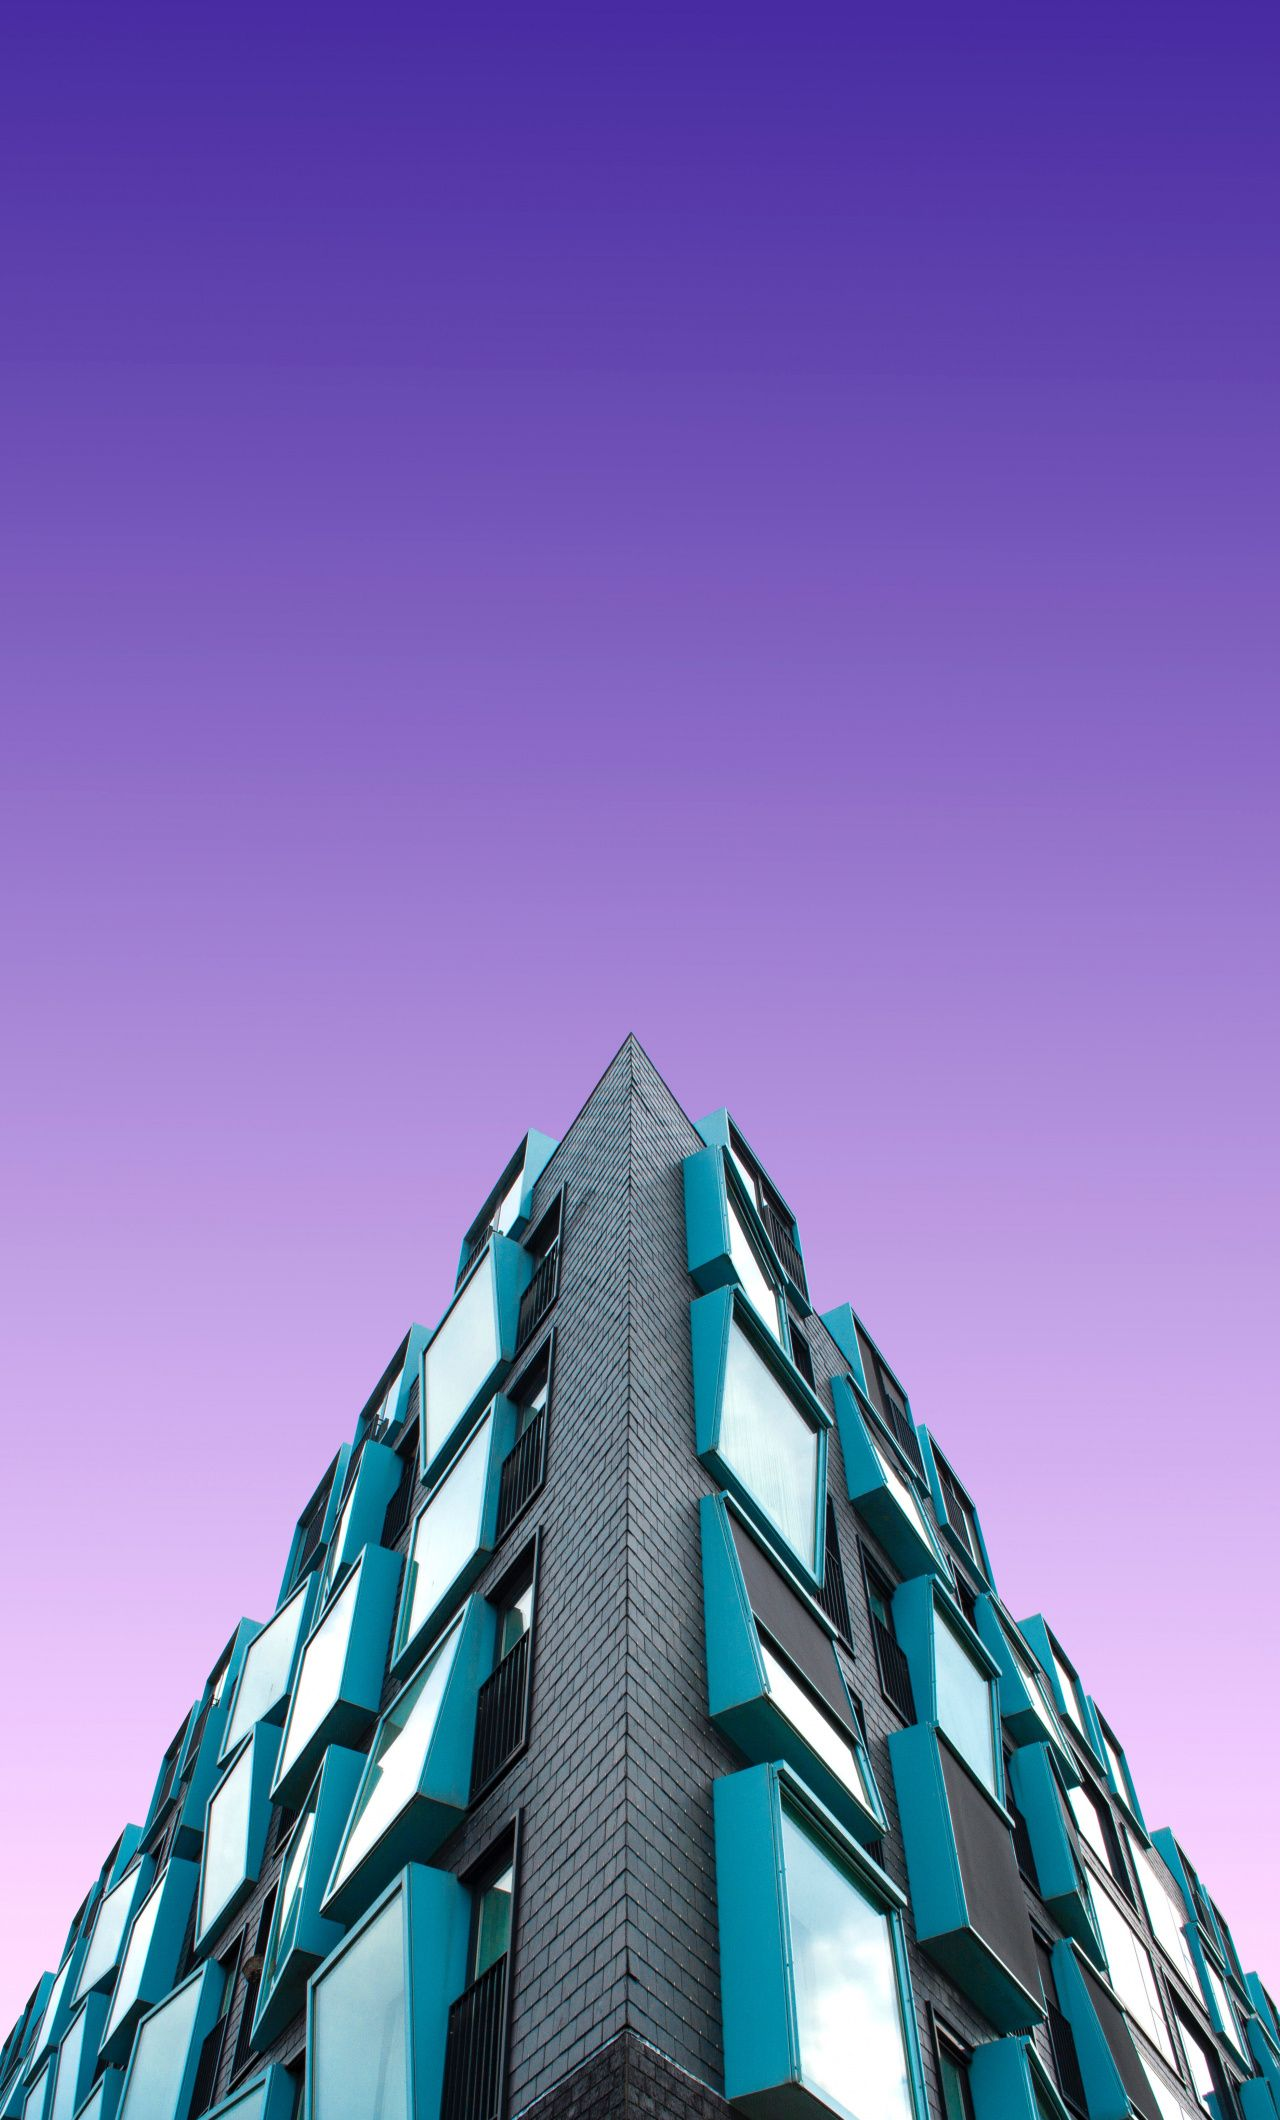 1280x2120 Building Purple Sky Architecture Wallpaper